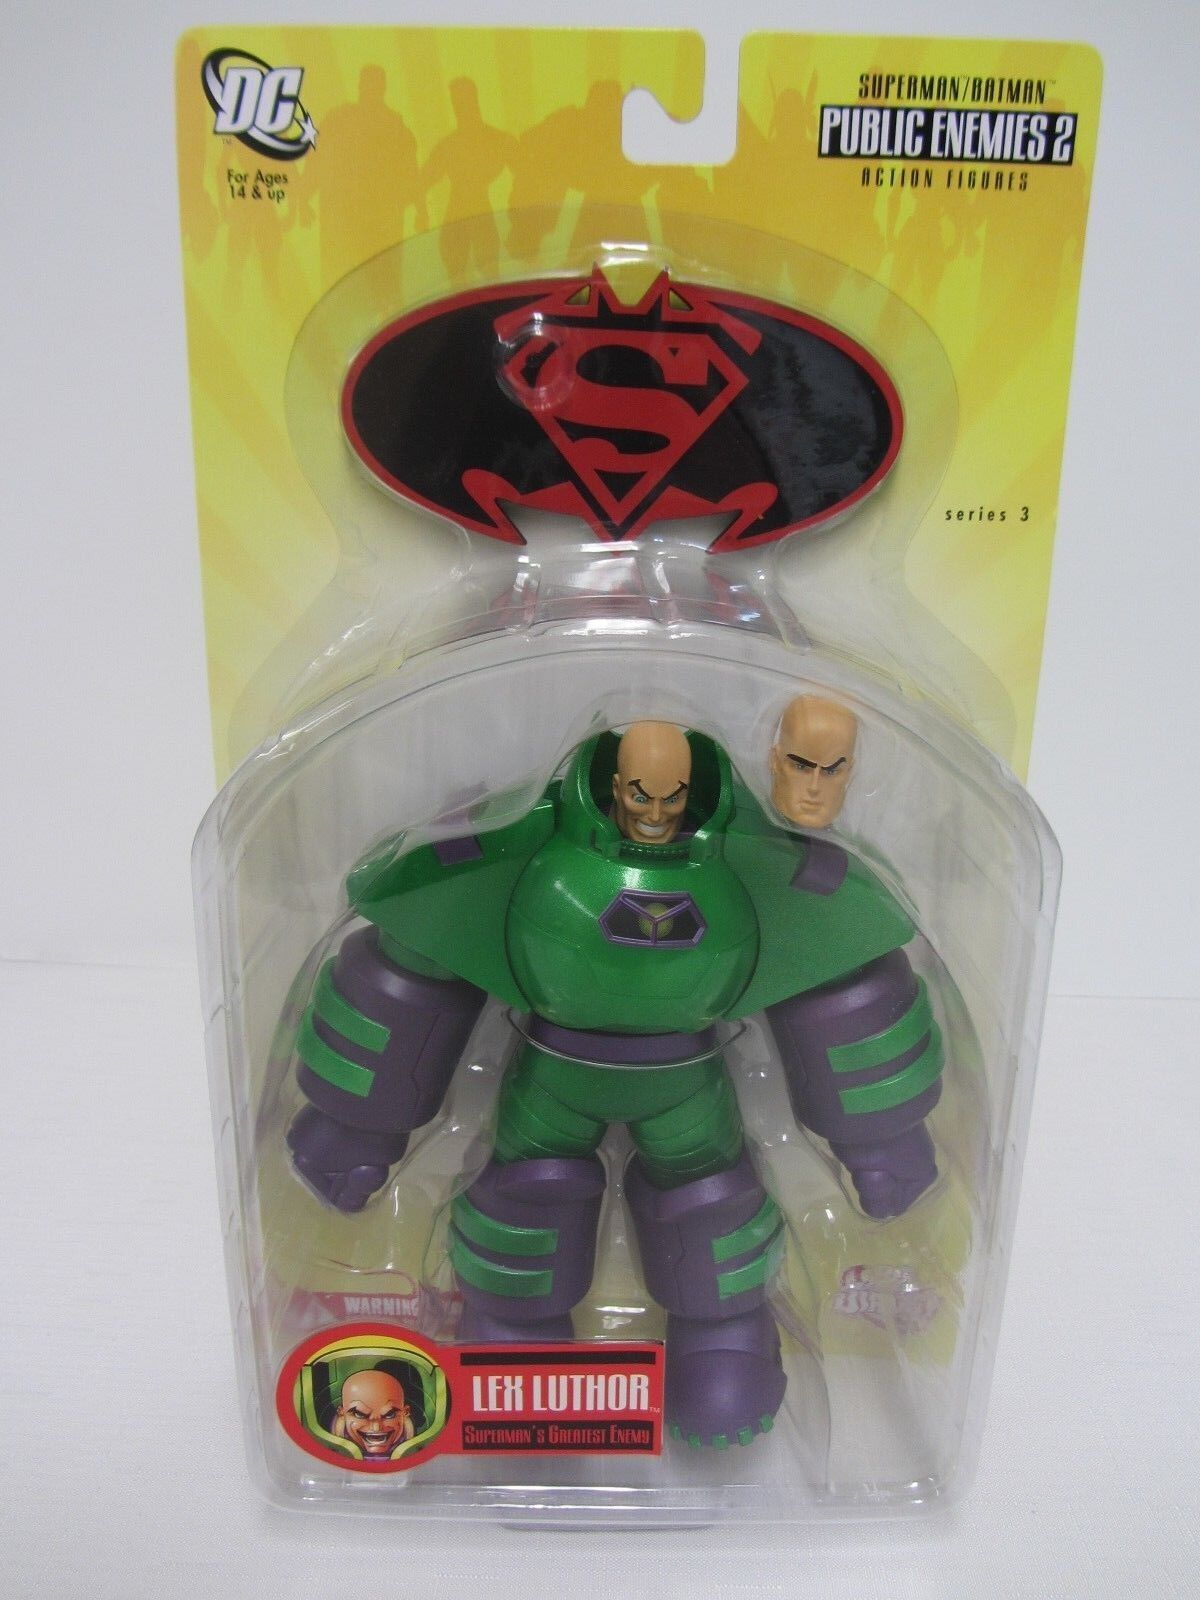 Lex Luthor Superman Batman Supermans Greatest Enemy NIB